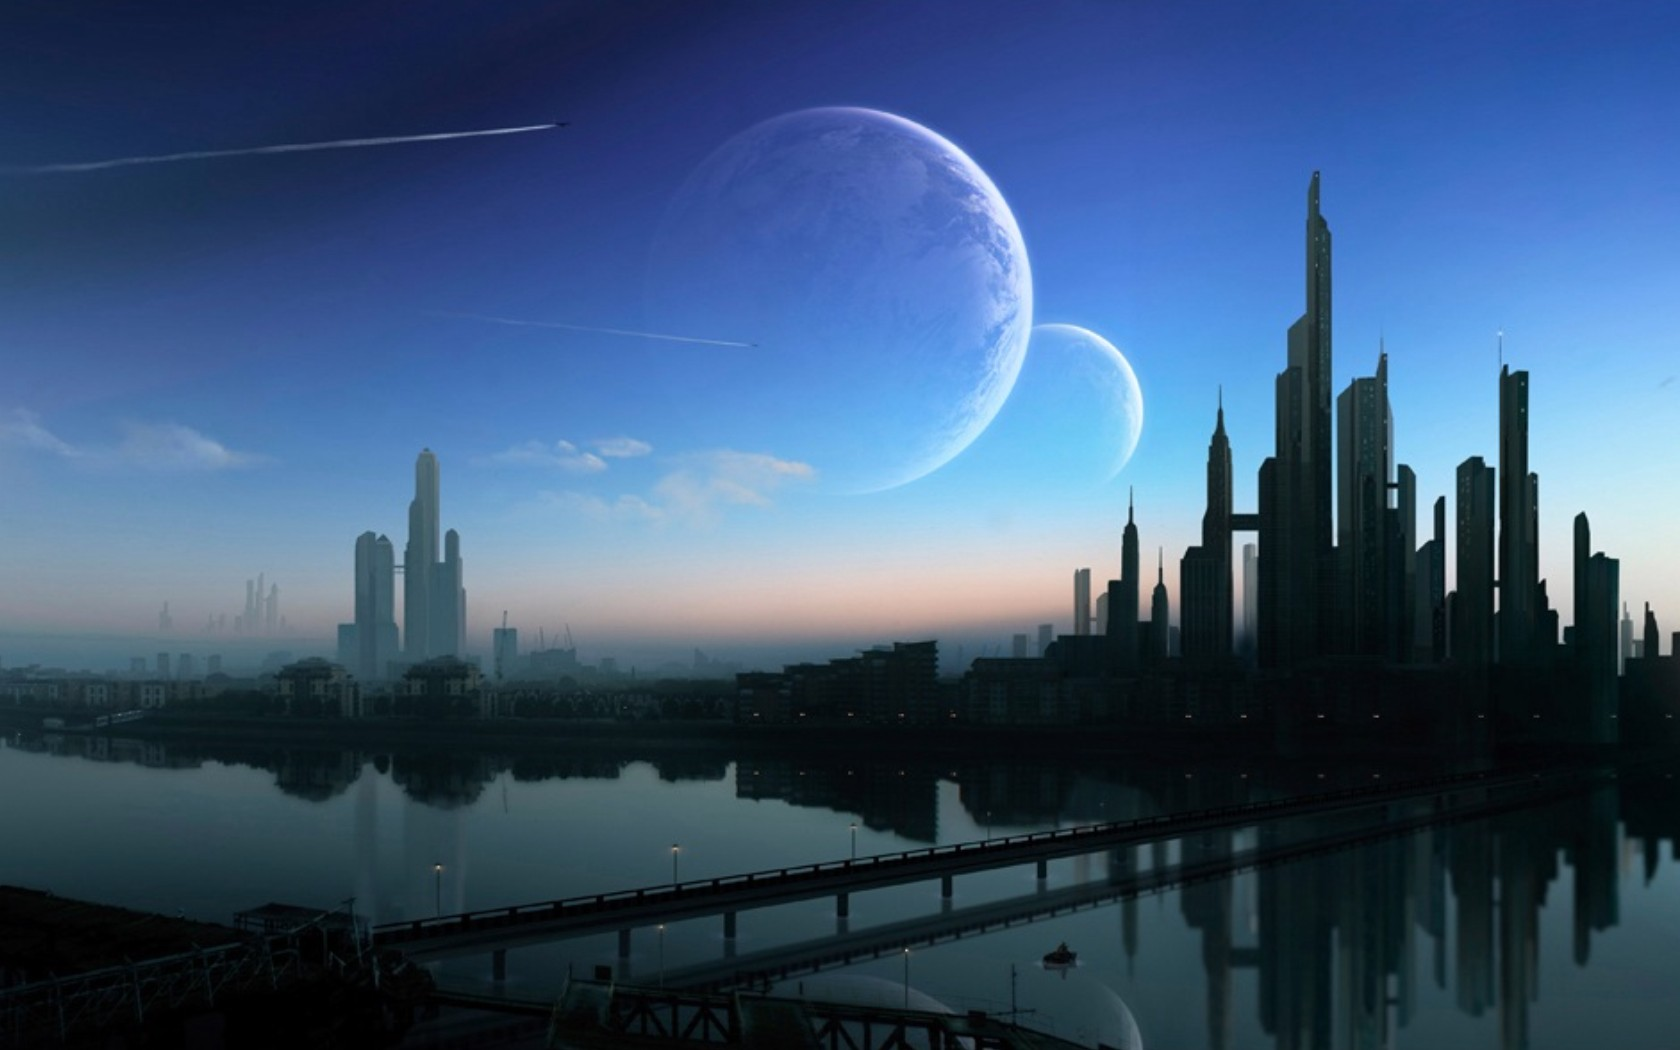 Futuristic City With Planets - HD Wallpaper